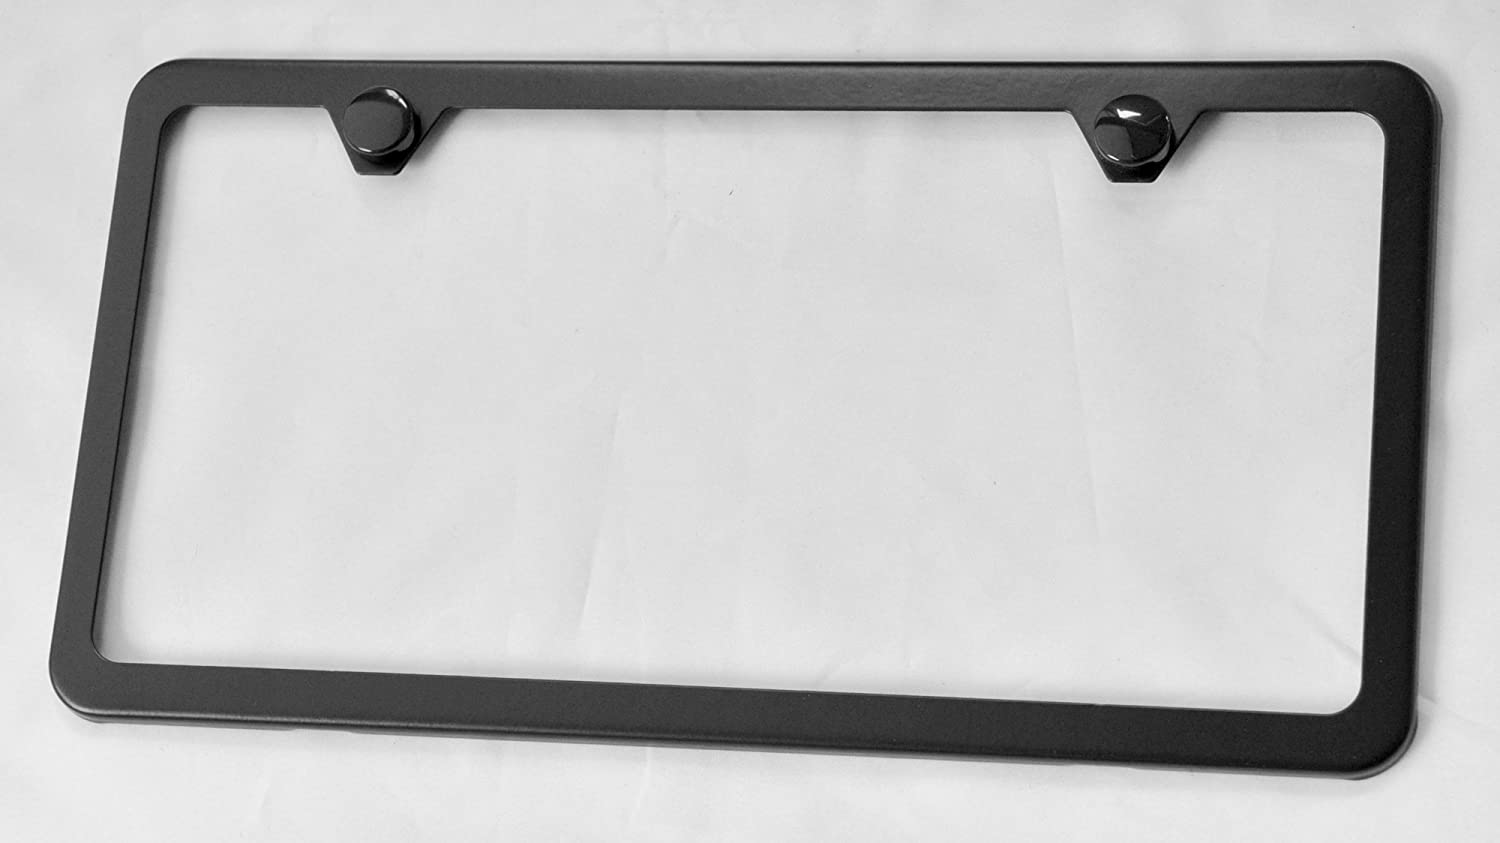 Slim Stainless Steel License Plate Frame Black New